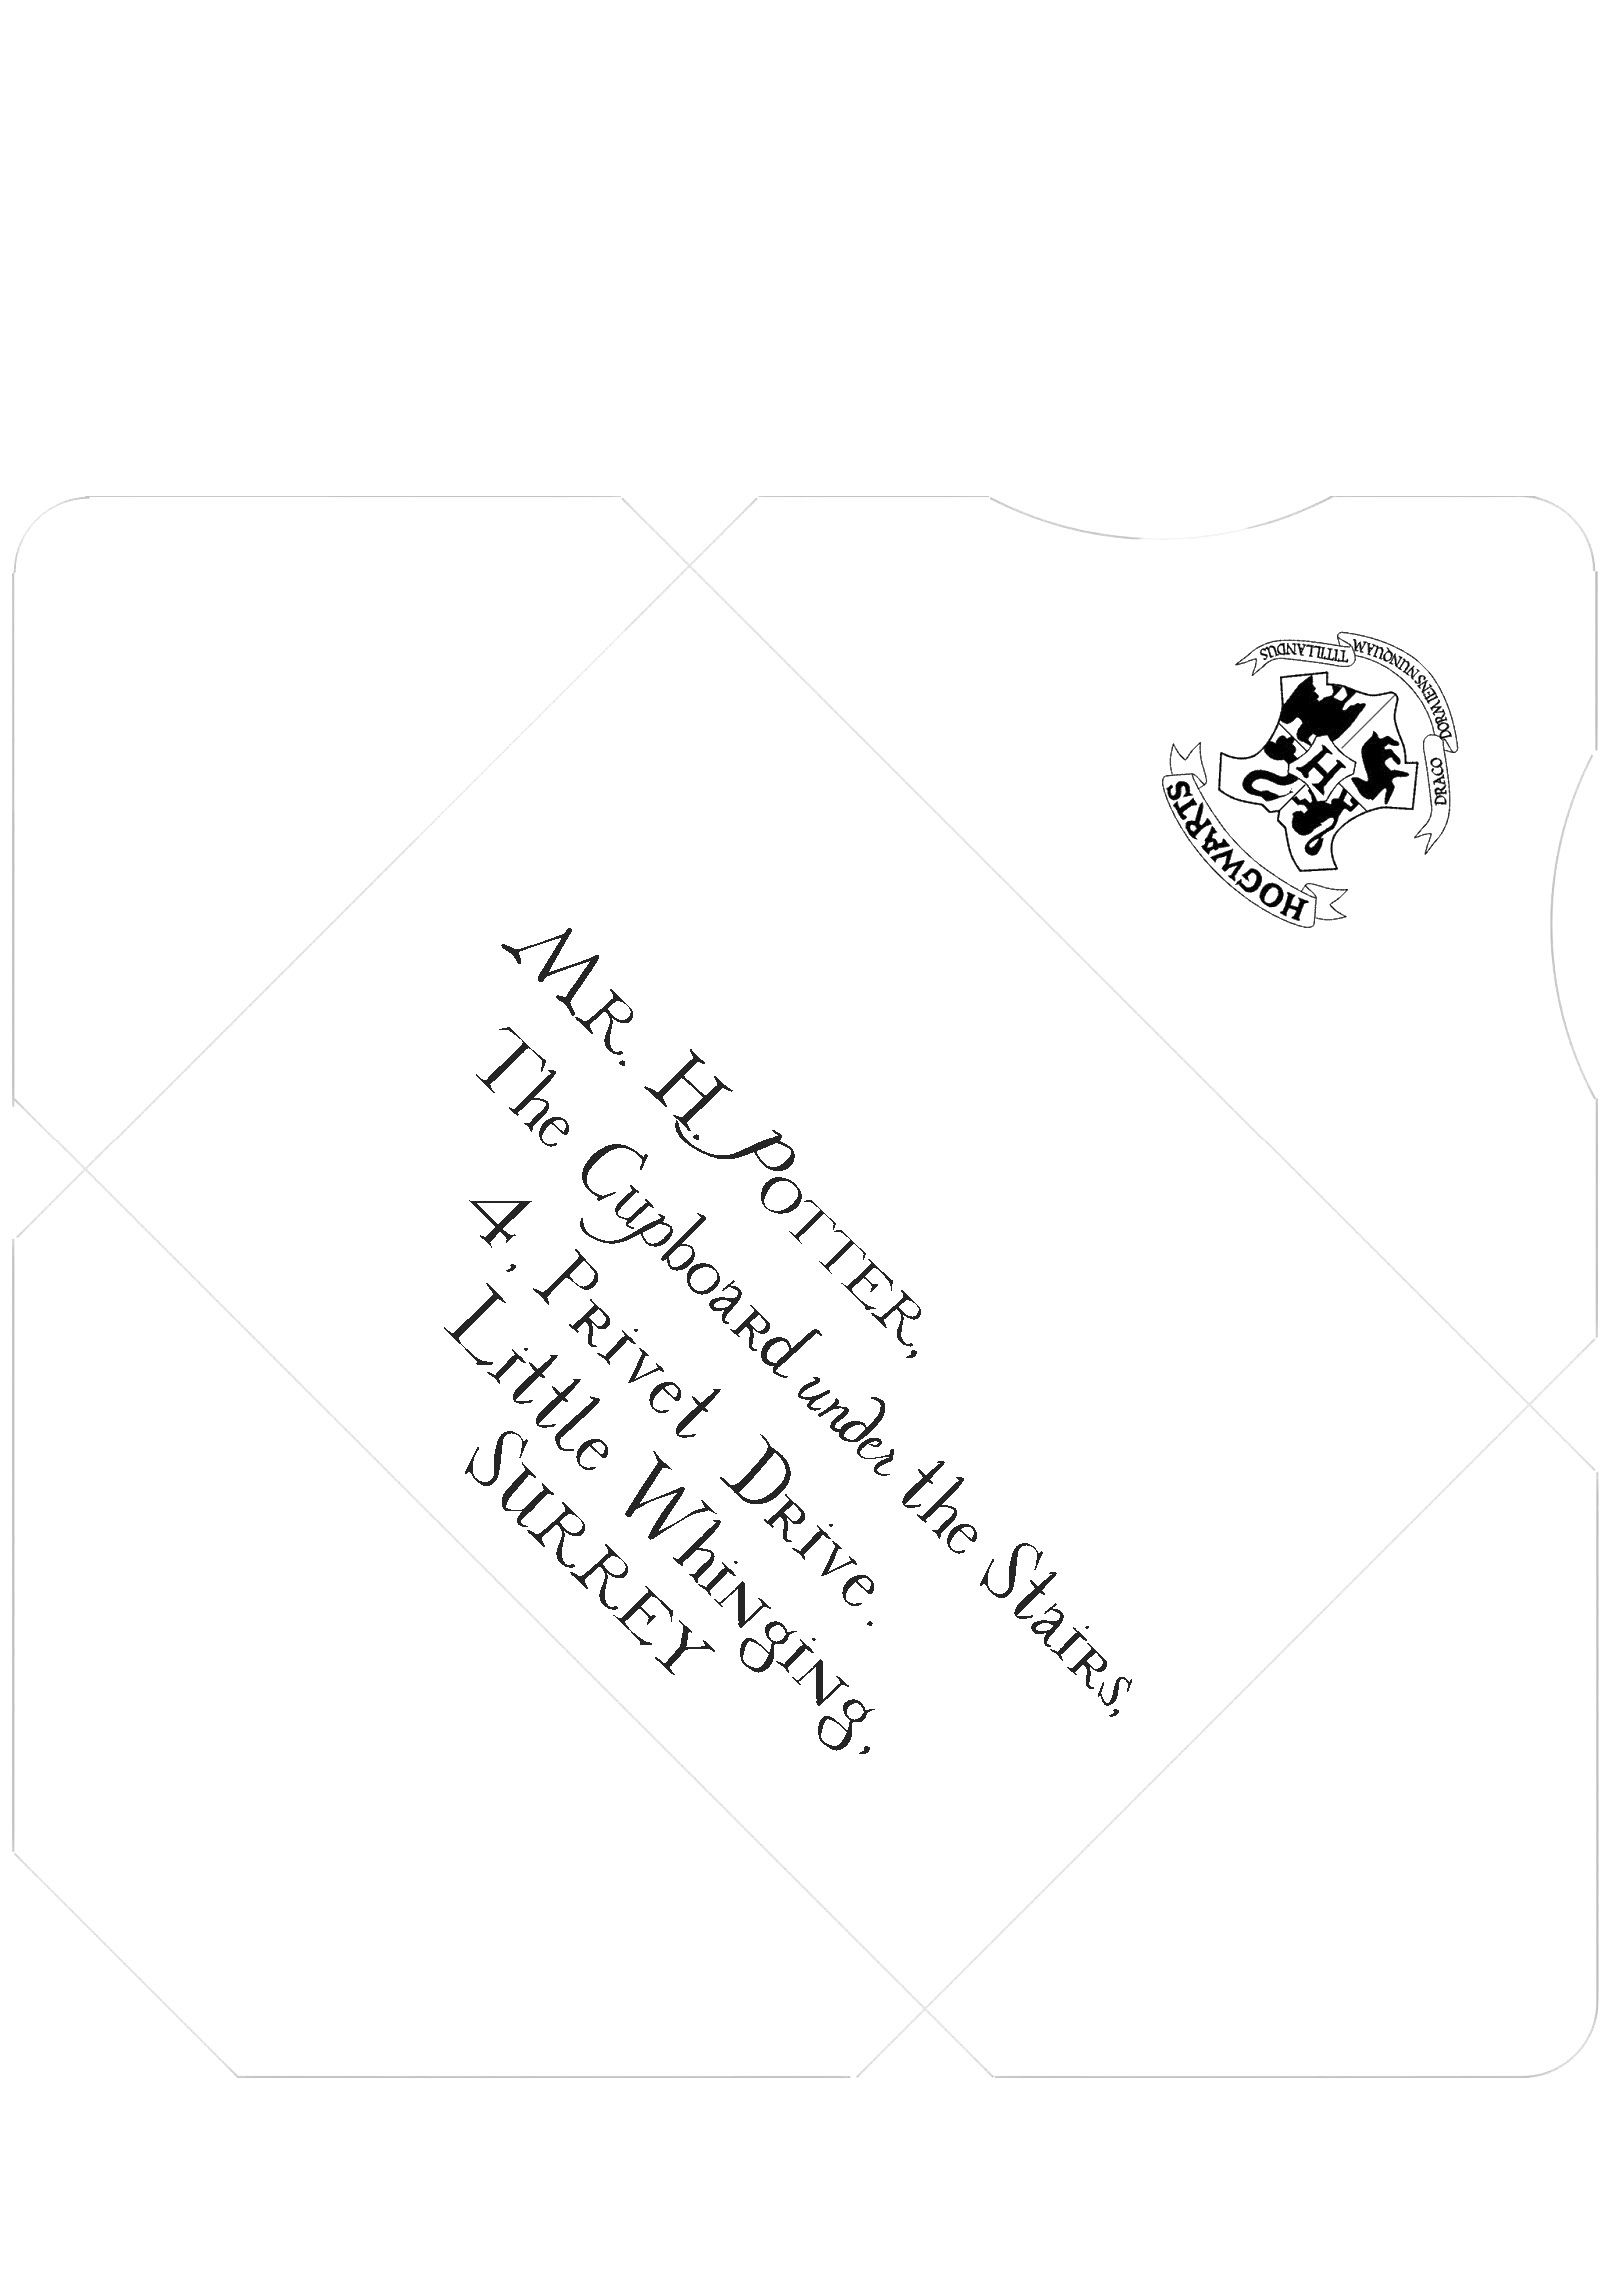 Harry Potter Inspired Addressed And Sealed Envelope Template Print On Parchment Paper